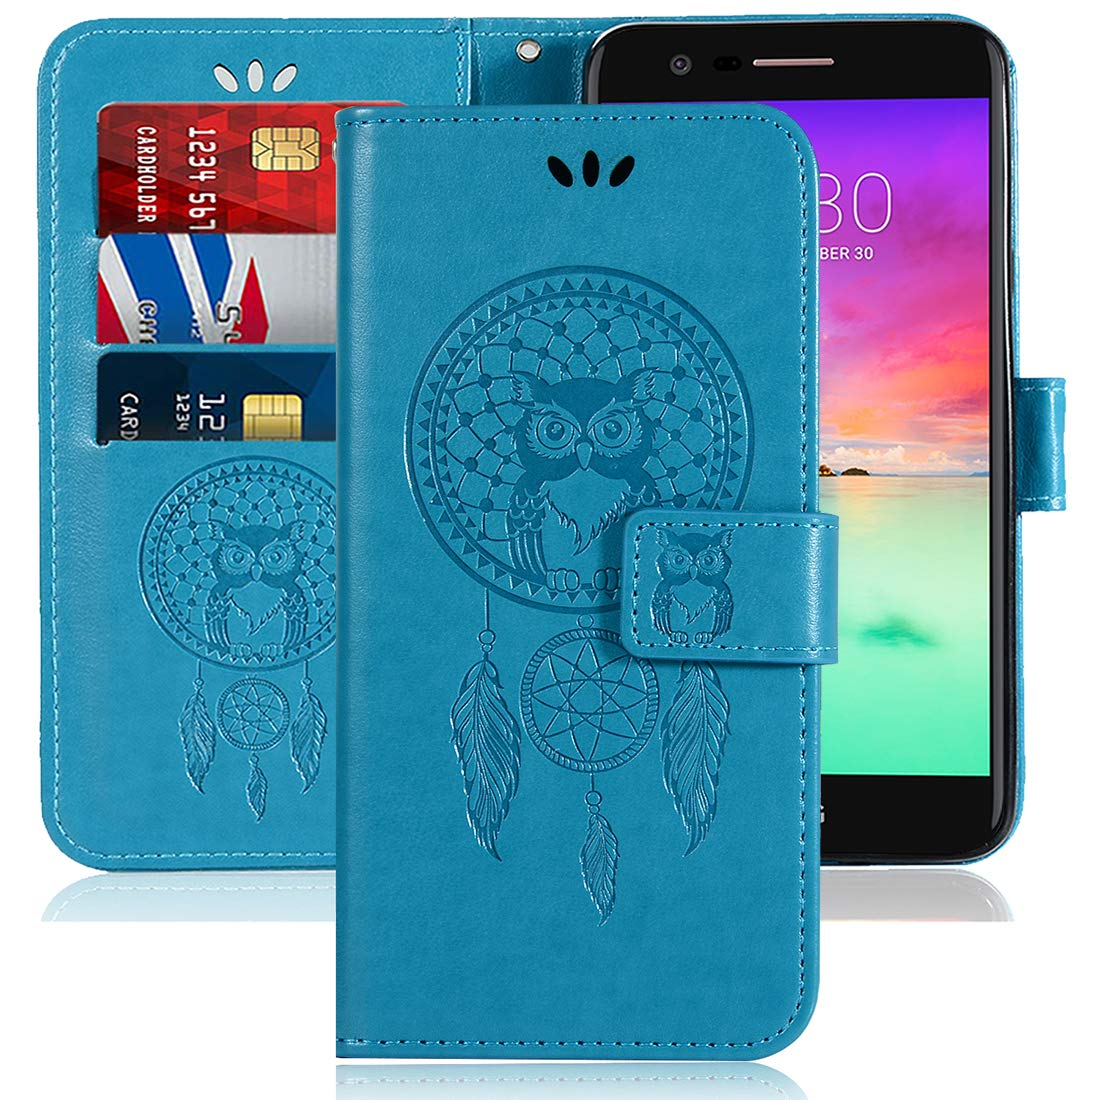 Sidande LG K20 V/LG K20 Plus/LG Harmony/LG Grace/LG V5 / K10 2017 Case, [Wrist Strap] Owl PU Leather Wallet Flip Protective Phone Case Cover with Card Slots for LG K10 2017 (Blue)